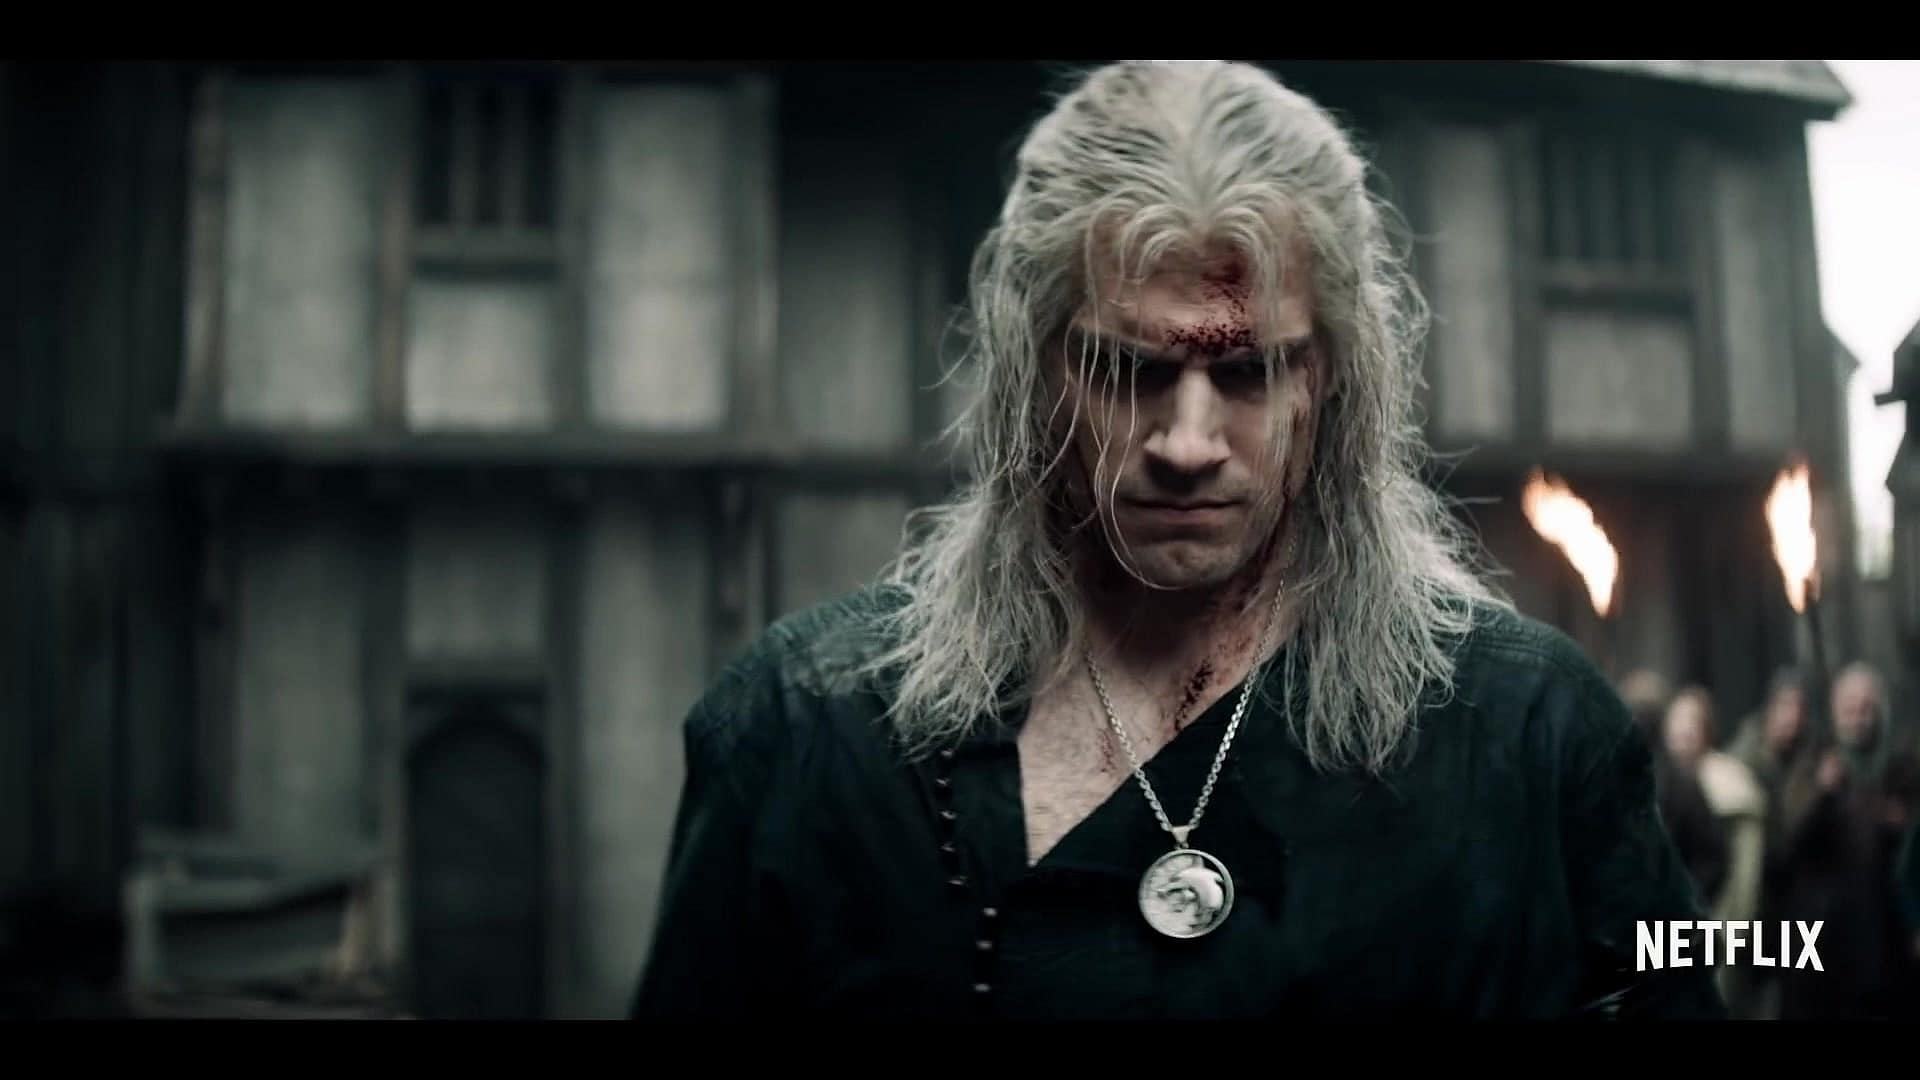 Netflix's The Witcher Showrunner Reveals the Greatest Challenge In Series Adaptation